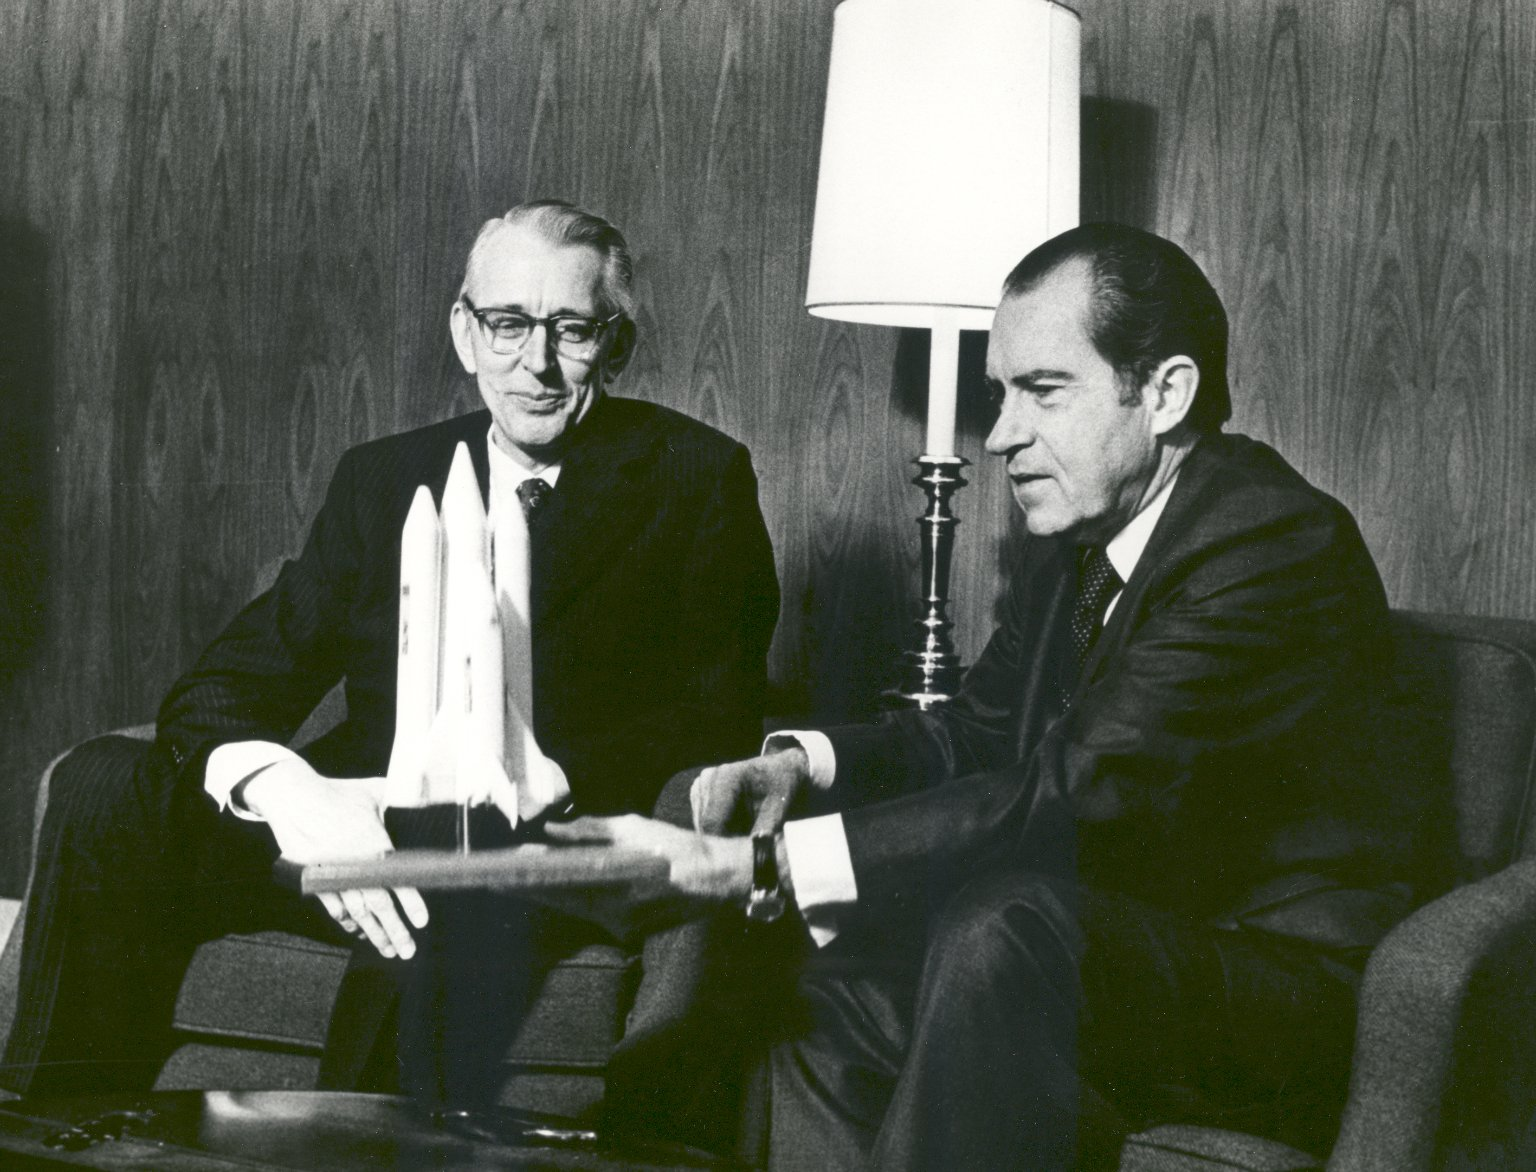 President Nixon and James Fletcher Discuss the Space Shuttle